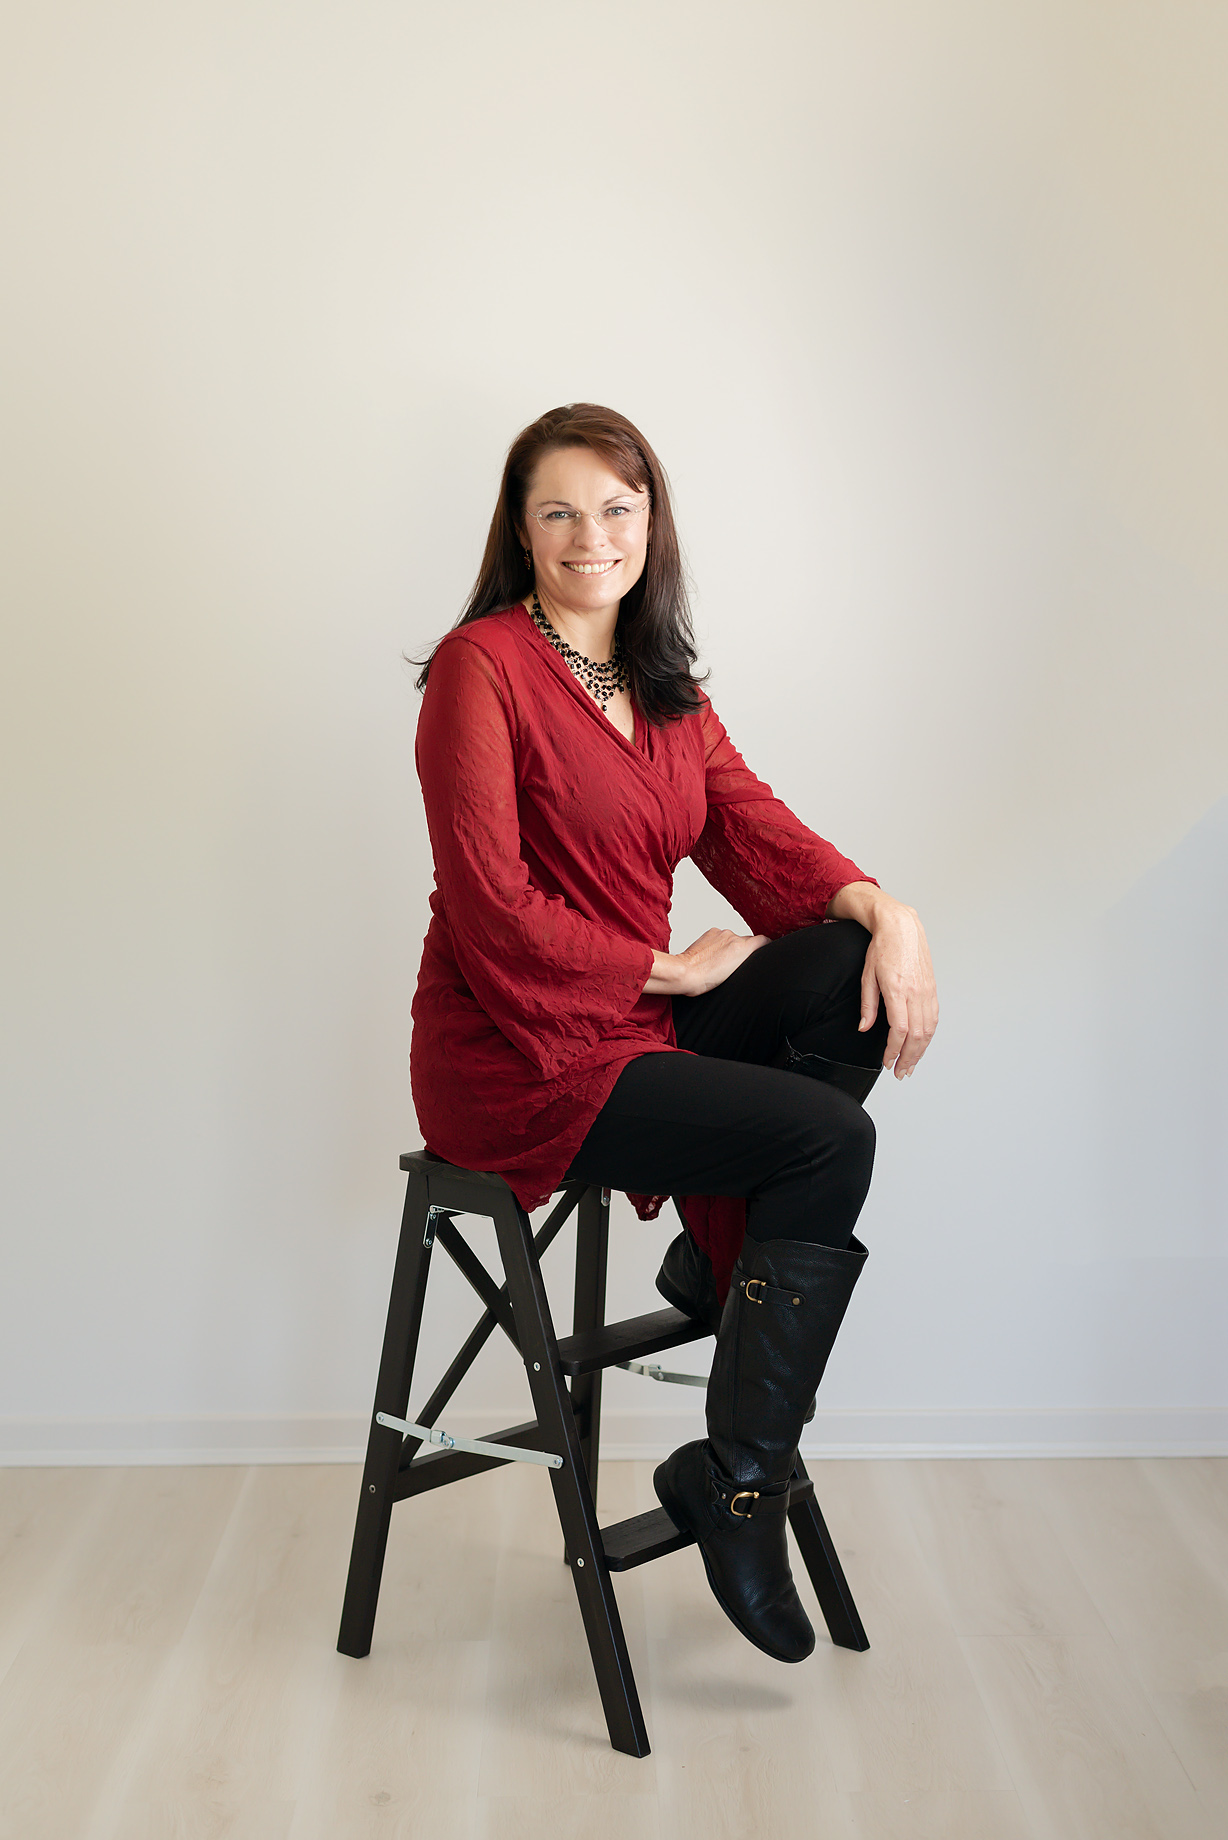 Image of Cathy sitting on a chair